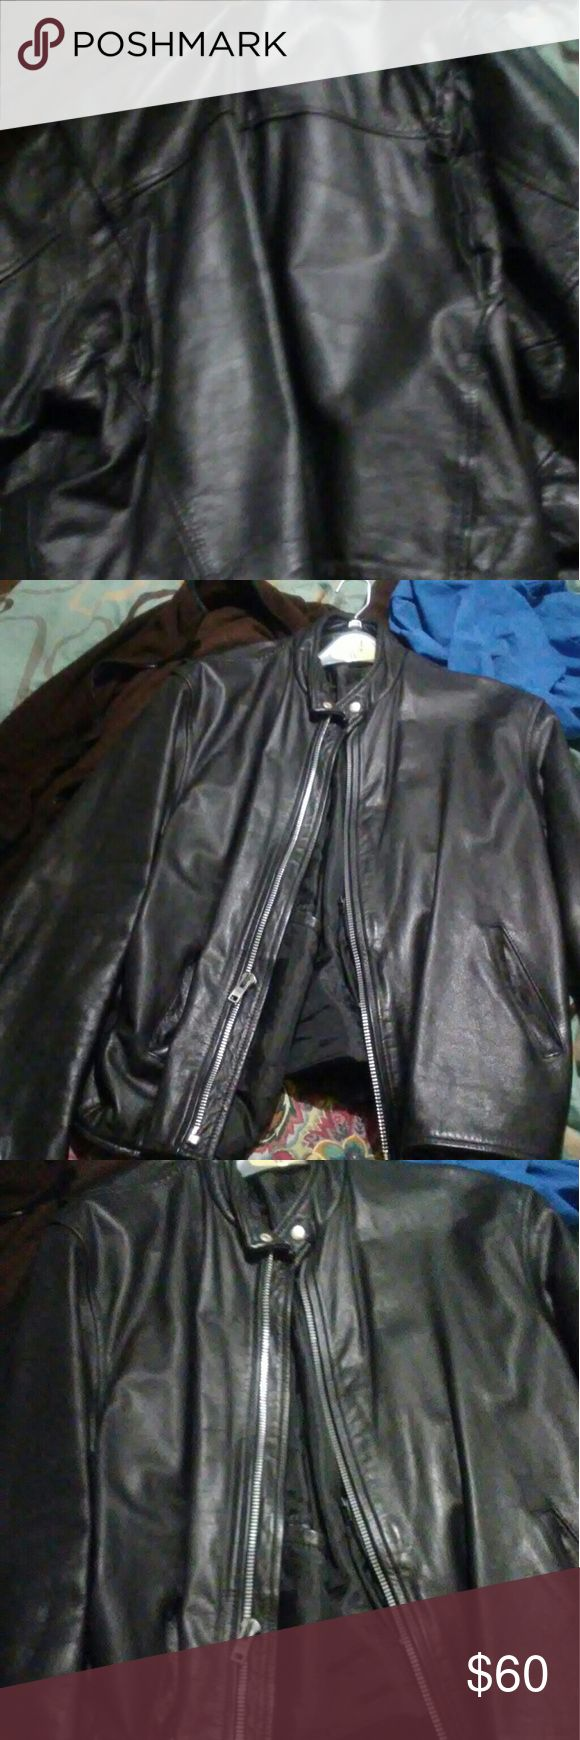 Leather(100%) mens motorcycle jacket All black, silver zippers, mens moto jacket. No rips tears, no abuse to it. Size 5xl( cut like a 3xl) Jackets & Coats Performance Jackets